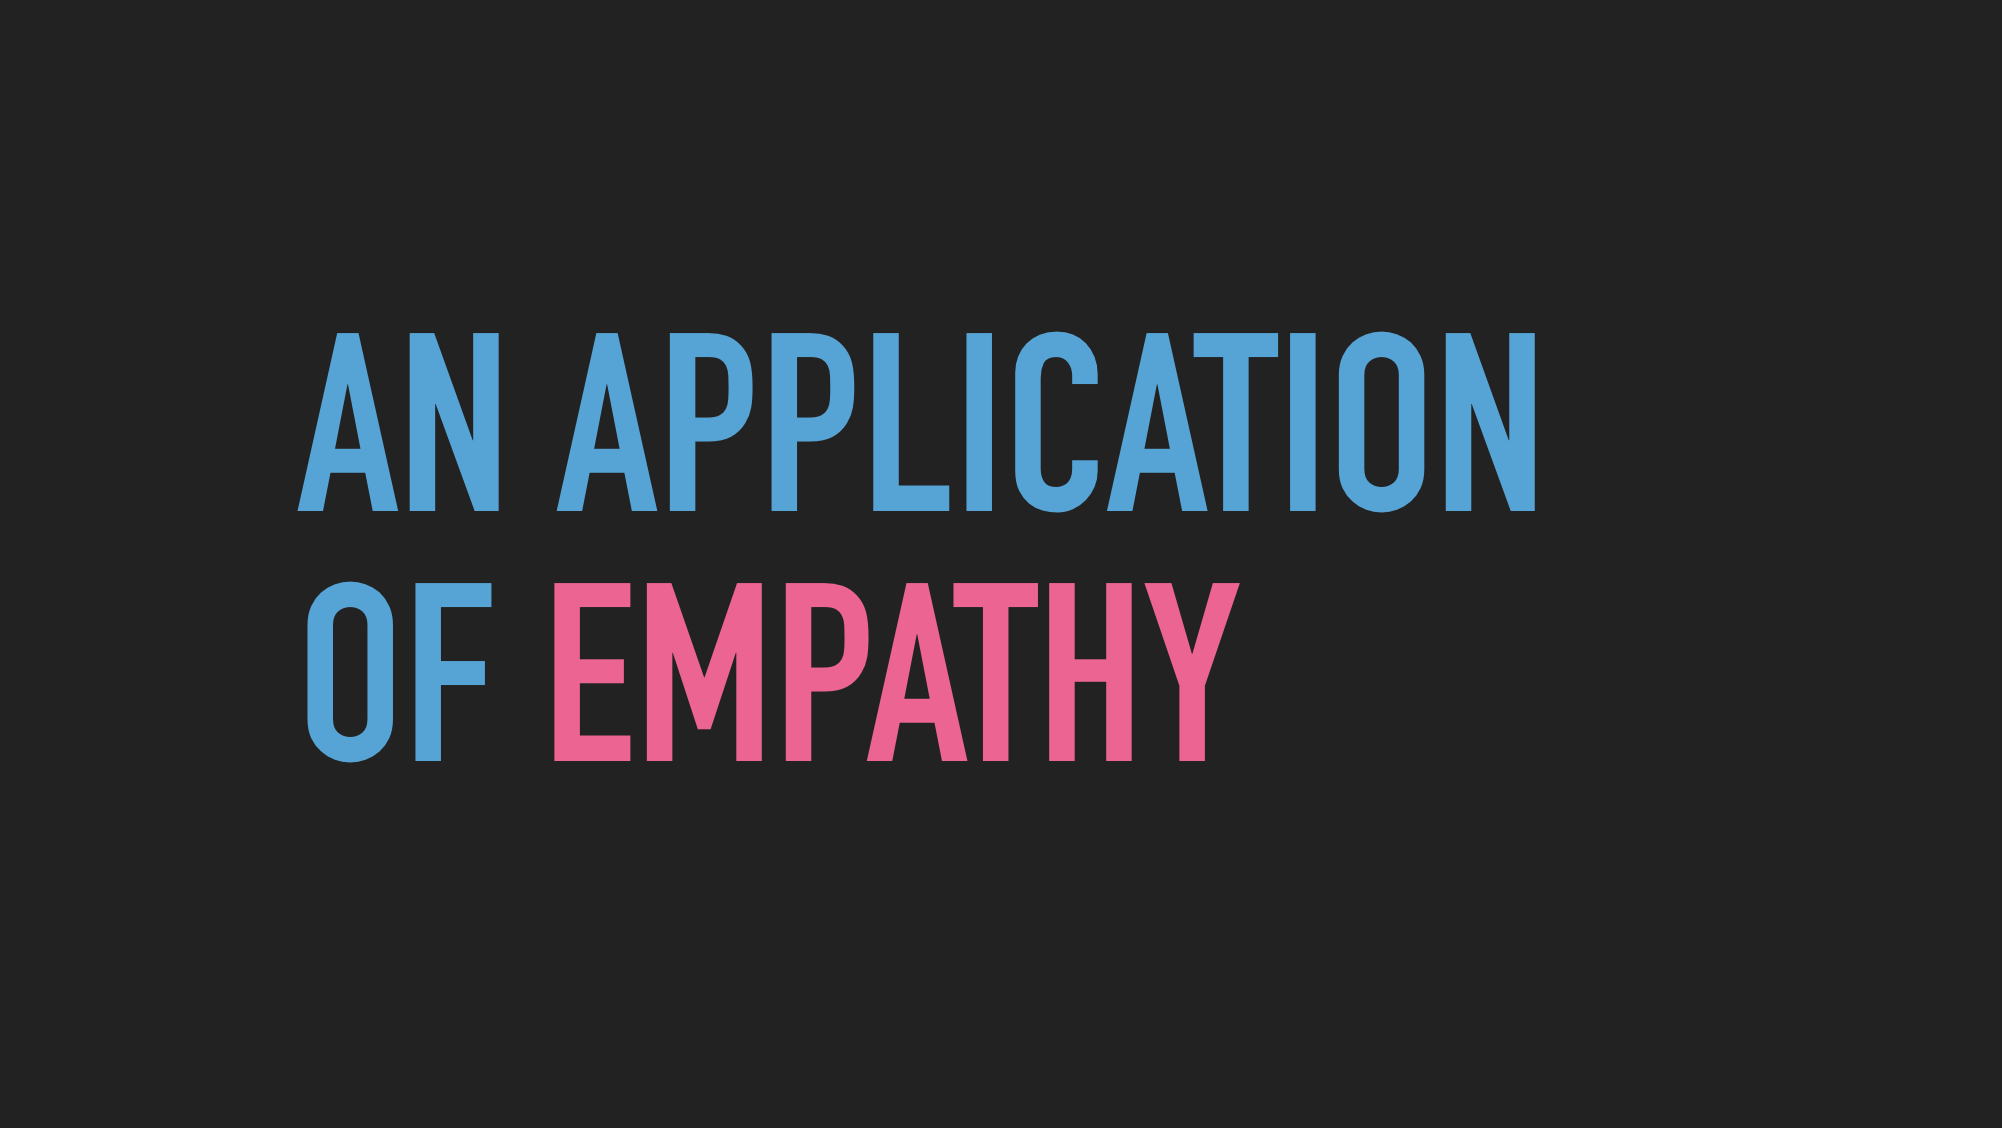 Slide text: An application of empathy.